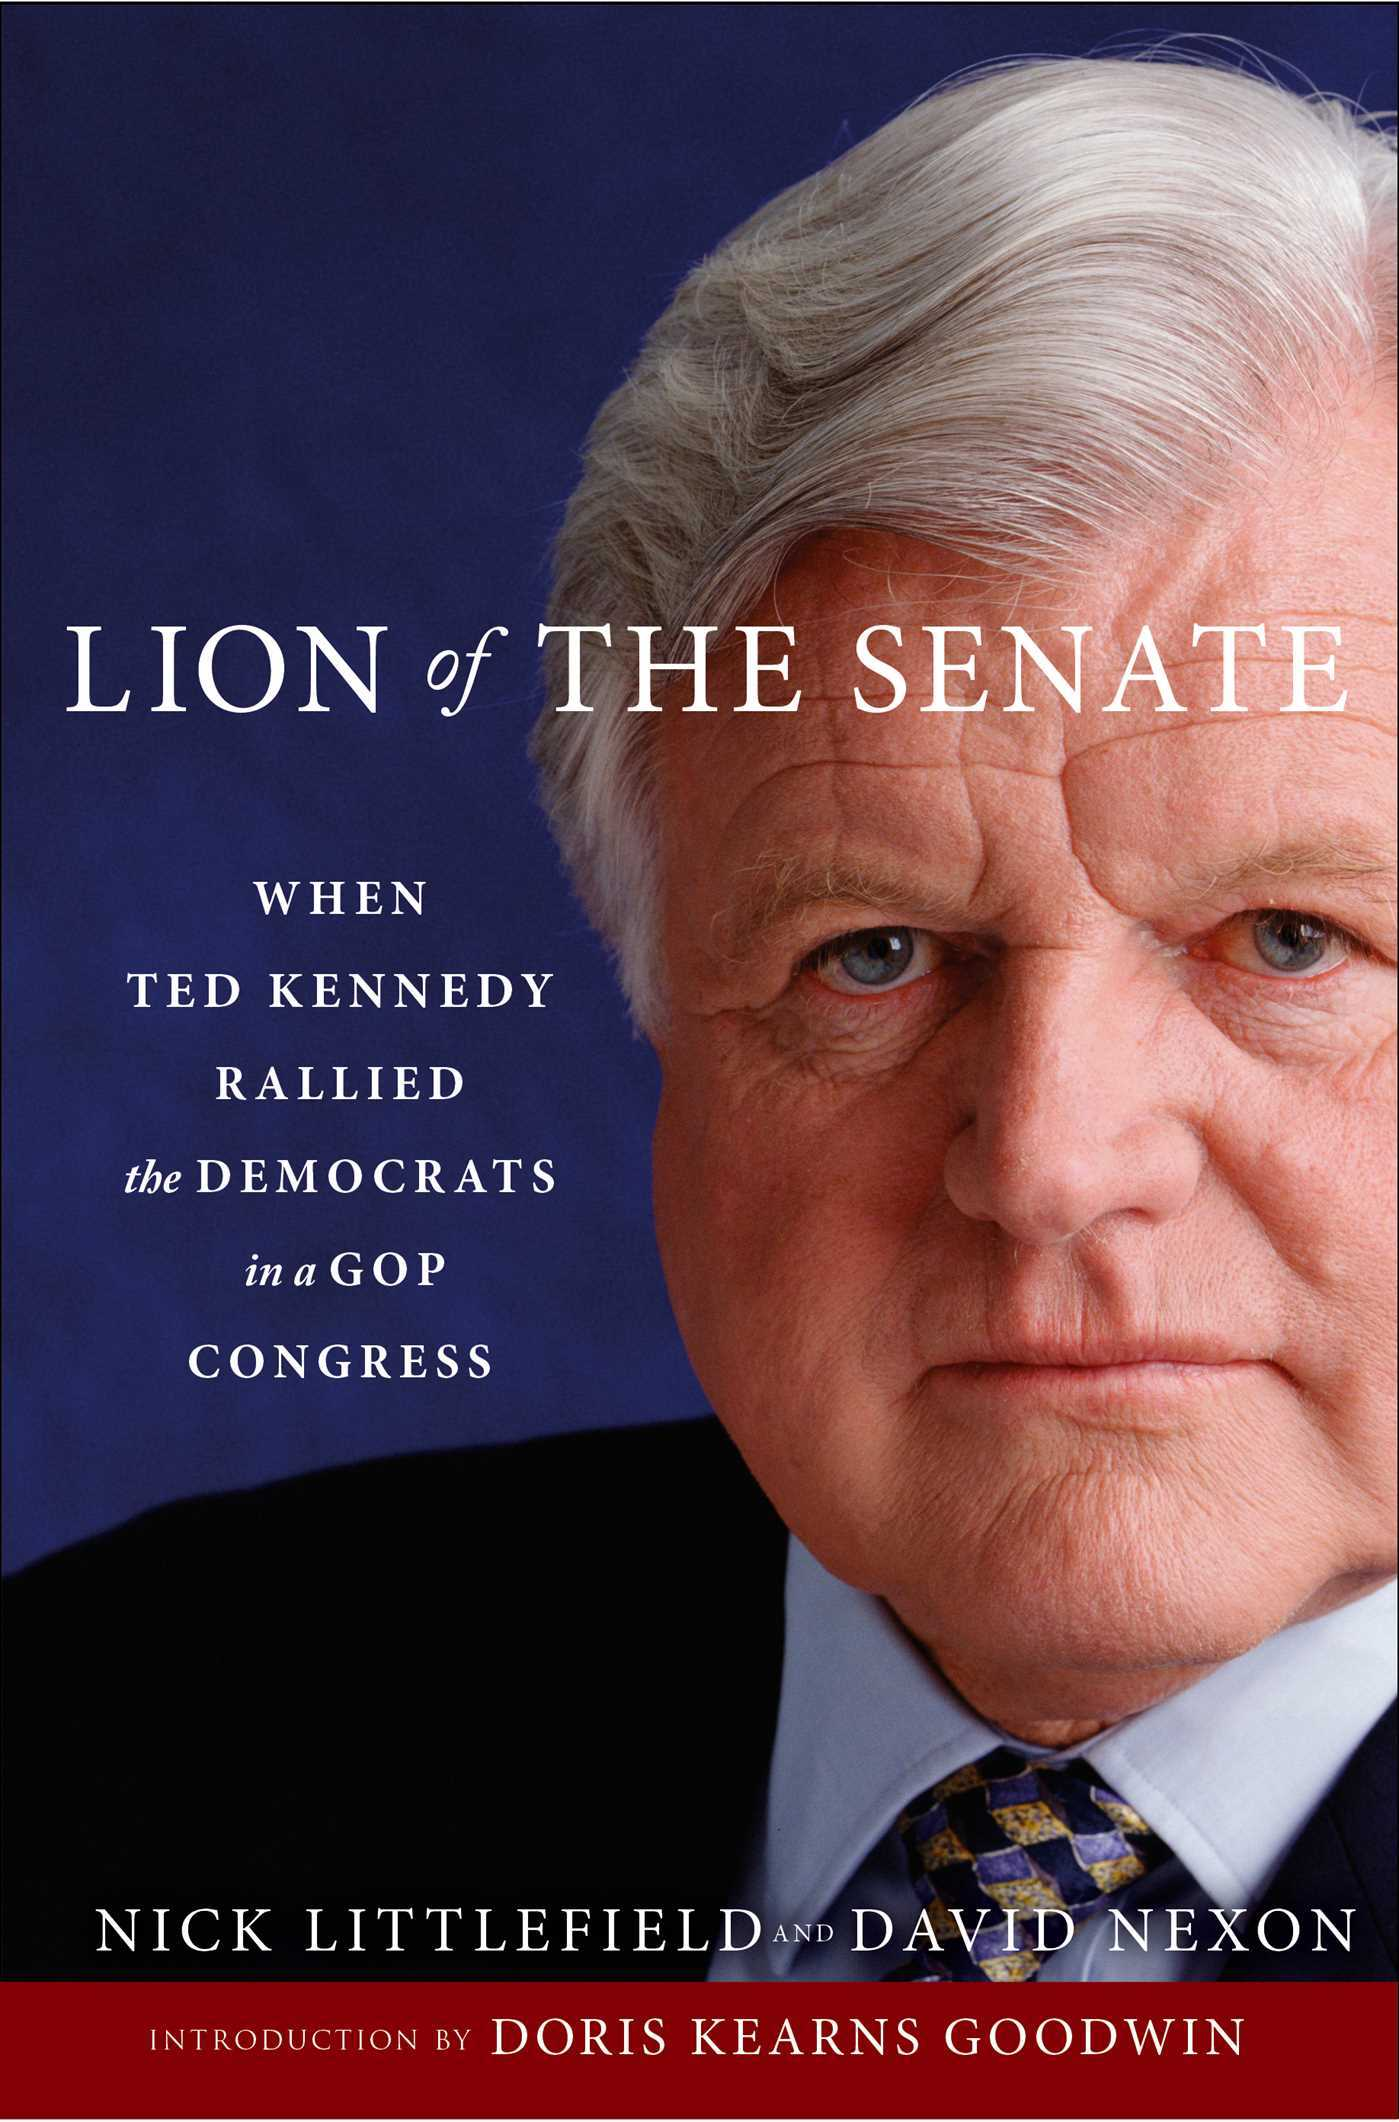 Lion of the Senate: When Ted Kennedy Rallied the Democrats in a GOP Congress  by  Nick Littlefield